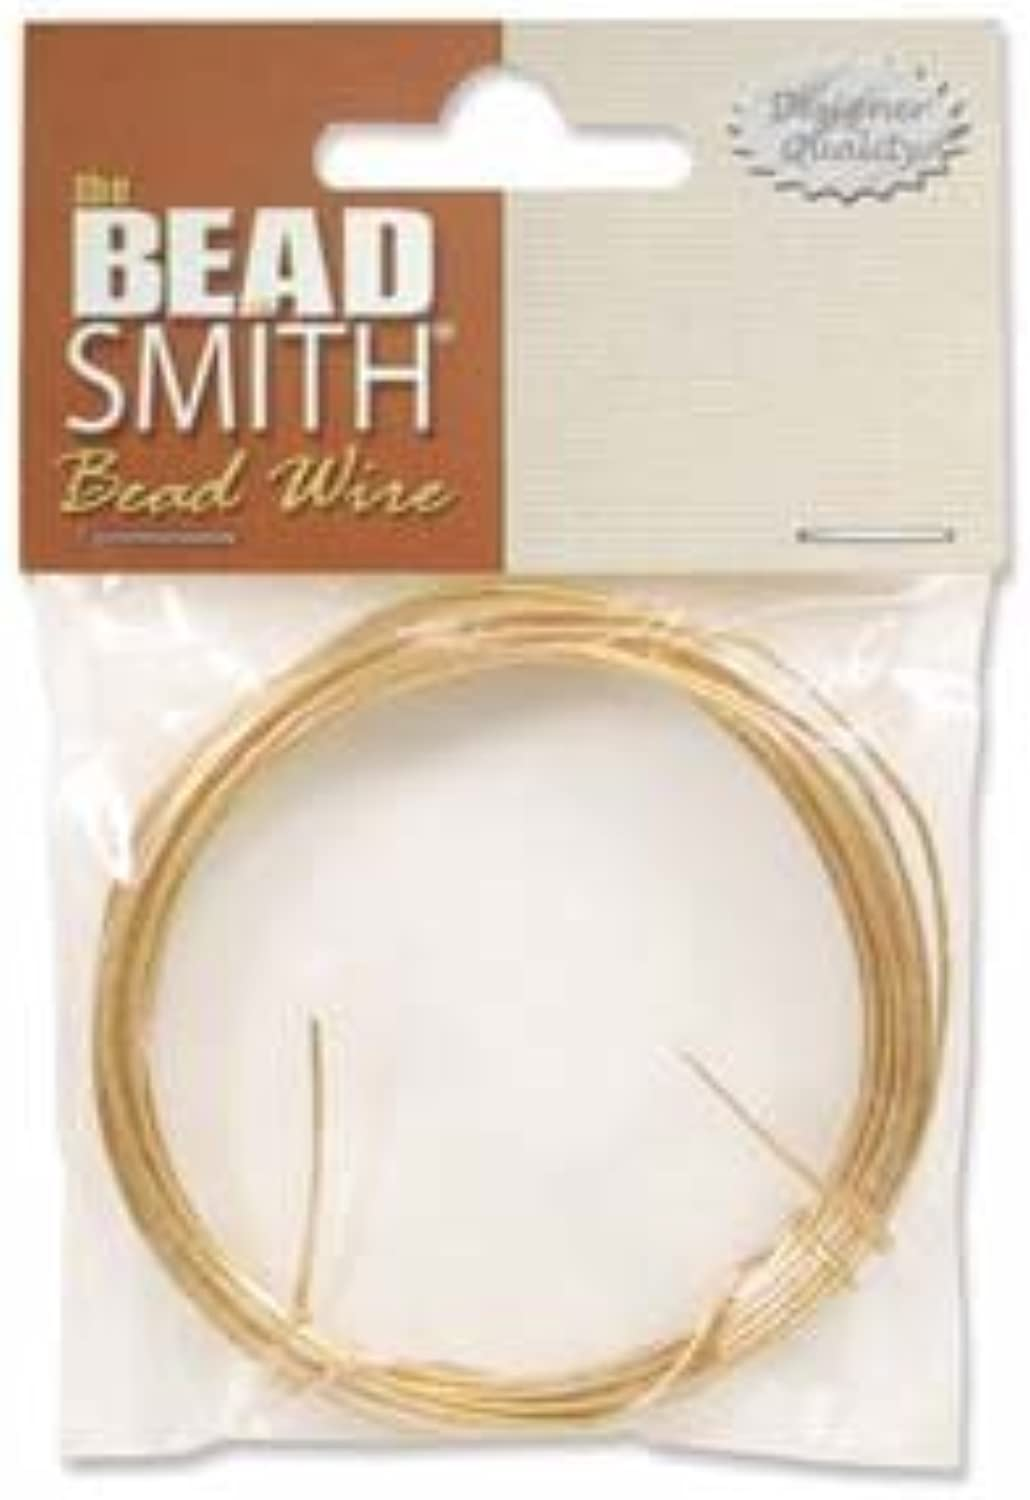 gold Plated German Bead Craft Wire 24 Gauge .5 Dia 12 Meters 42649